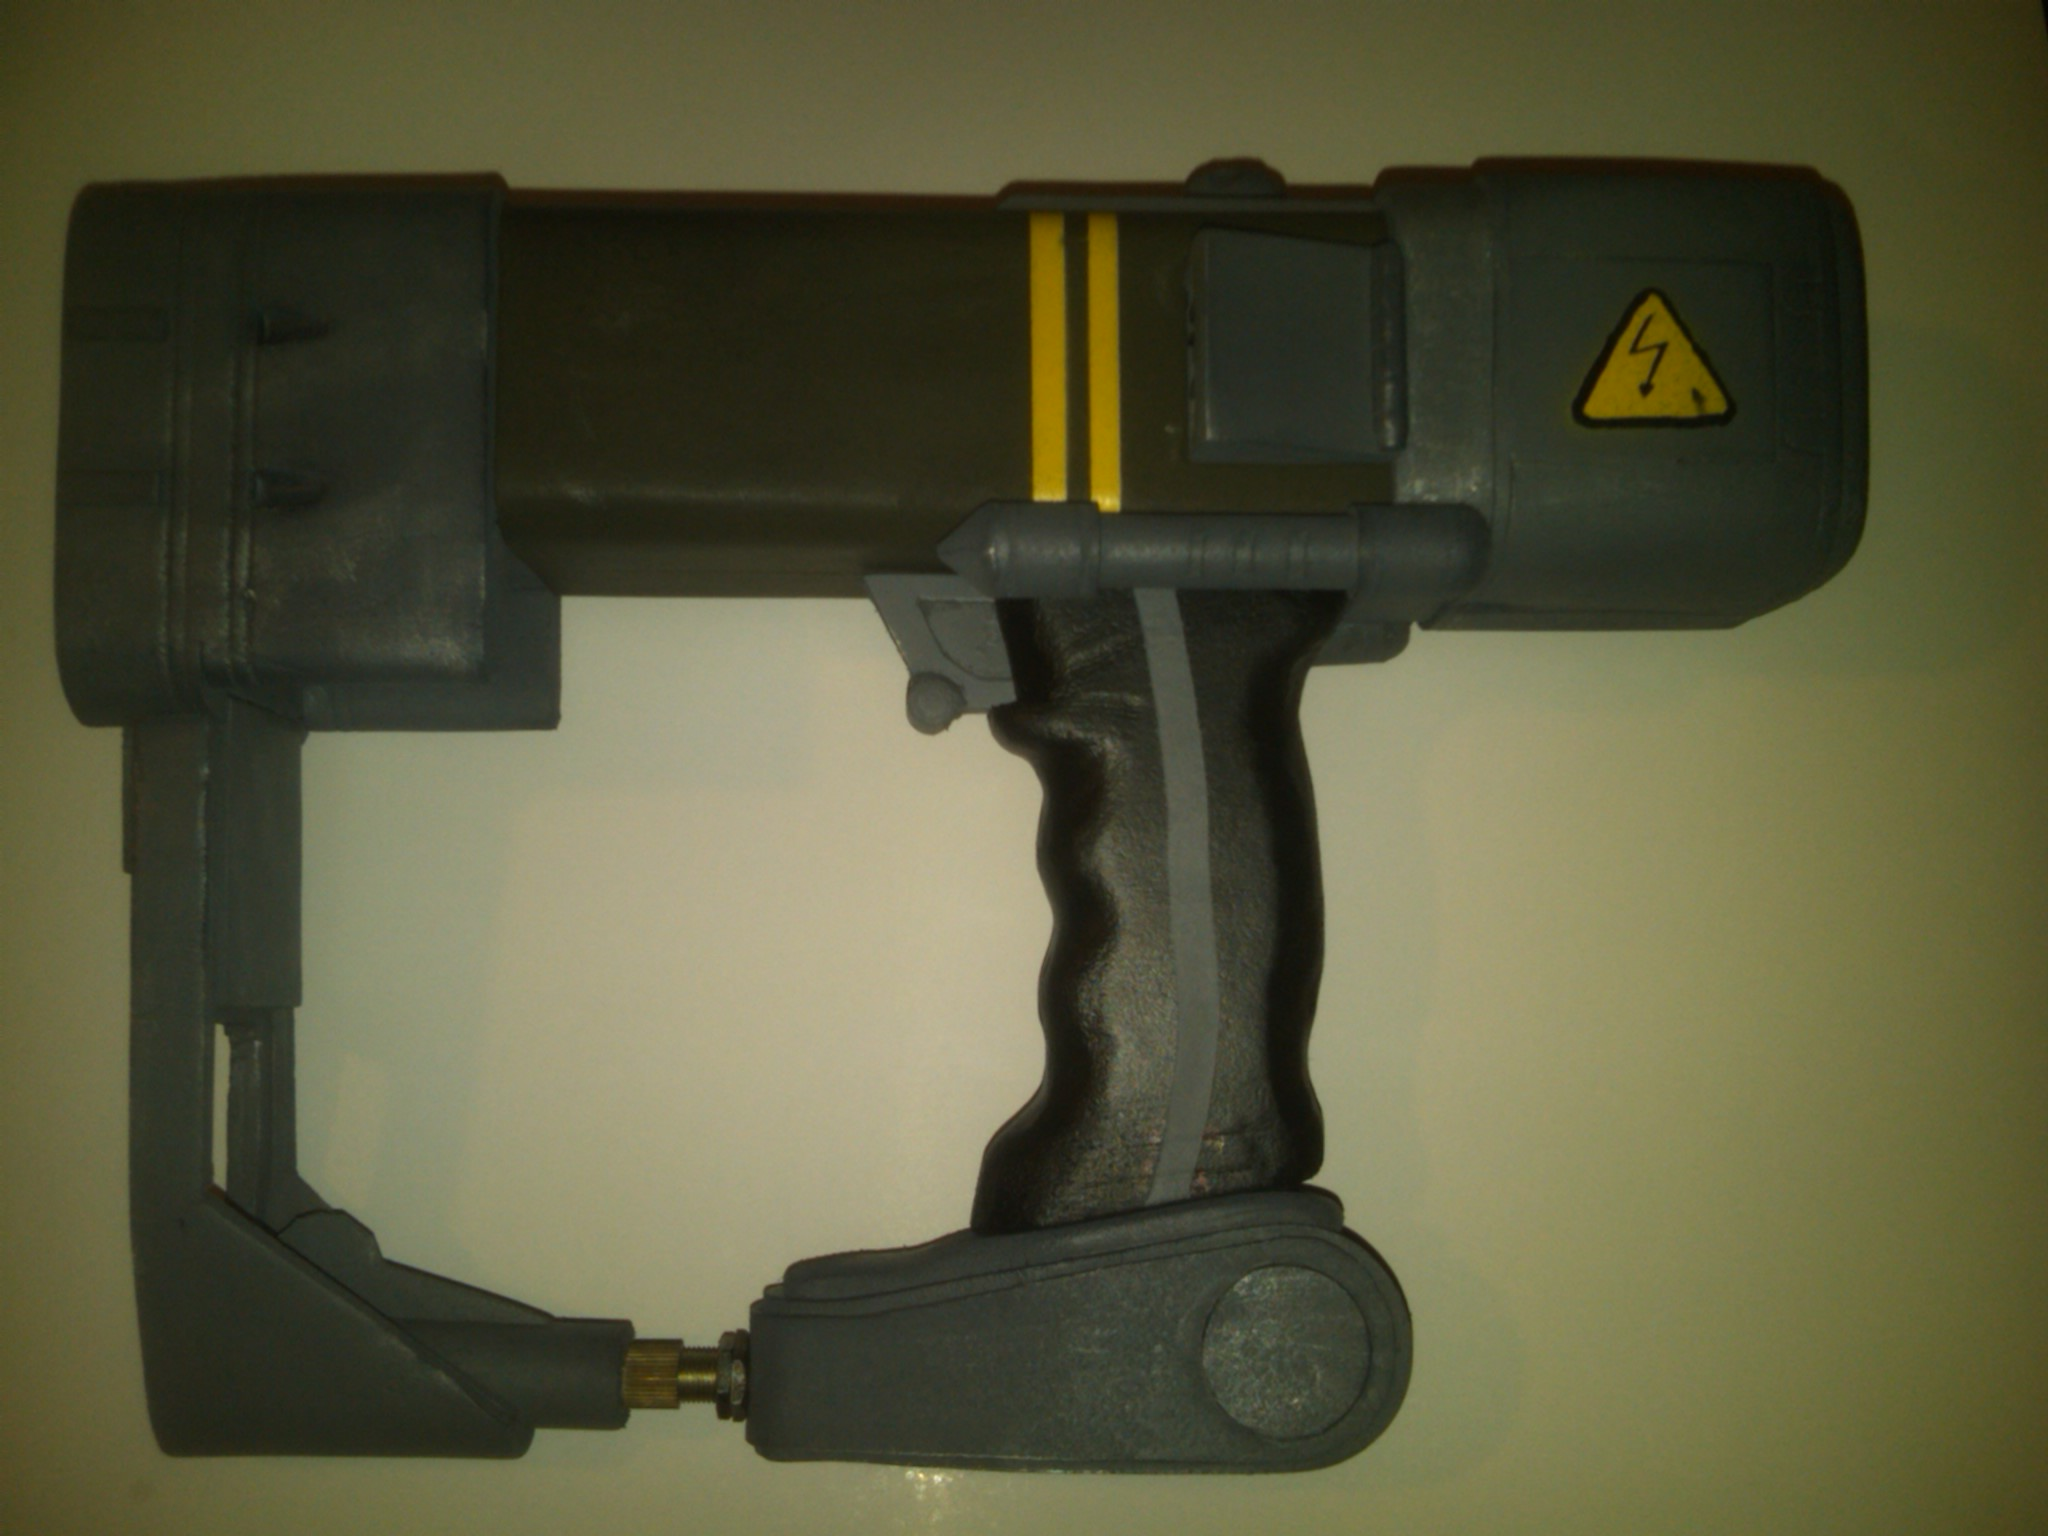 Fallout 3 AEP7 Laser build